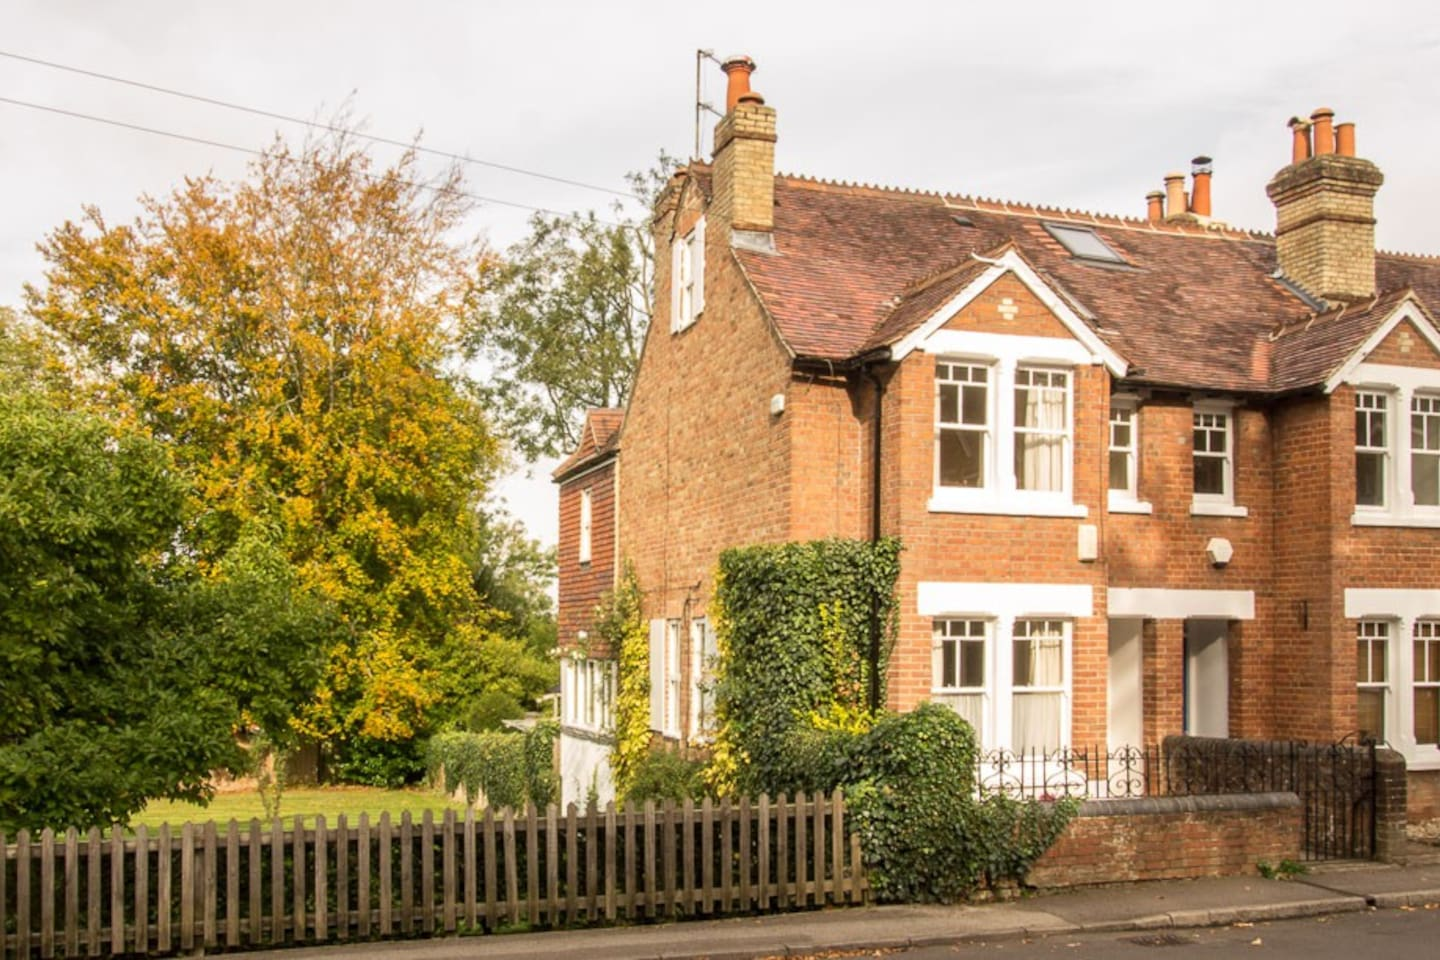 Midsomer Cottage is a delightful three bedroom Victorian cottage with open outlooks situated in a charming riverside village within the Oxford ring road, and with easy access to the city by bus, or a leisurely walk along the towpath.